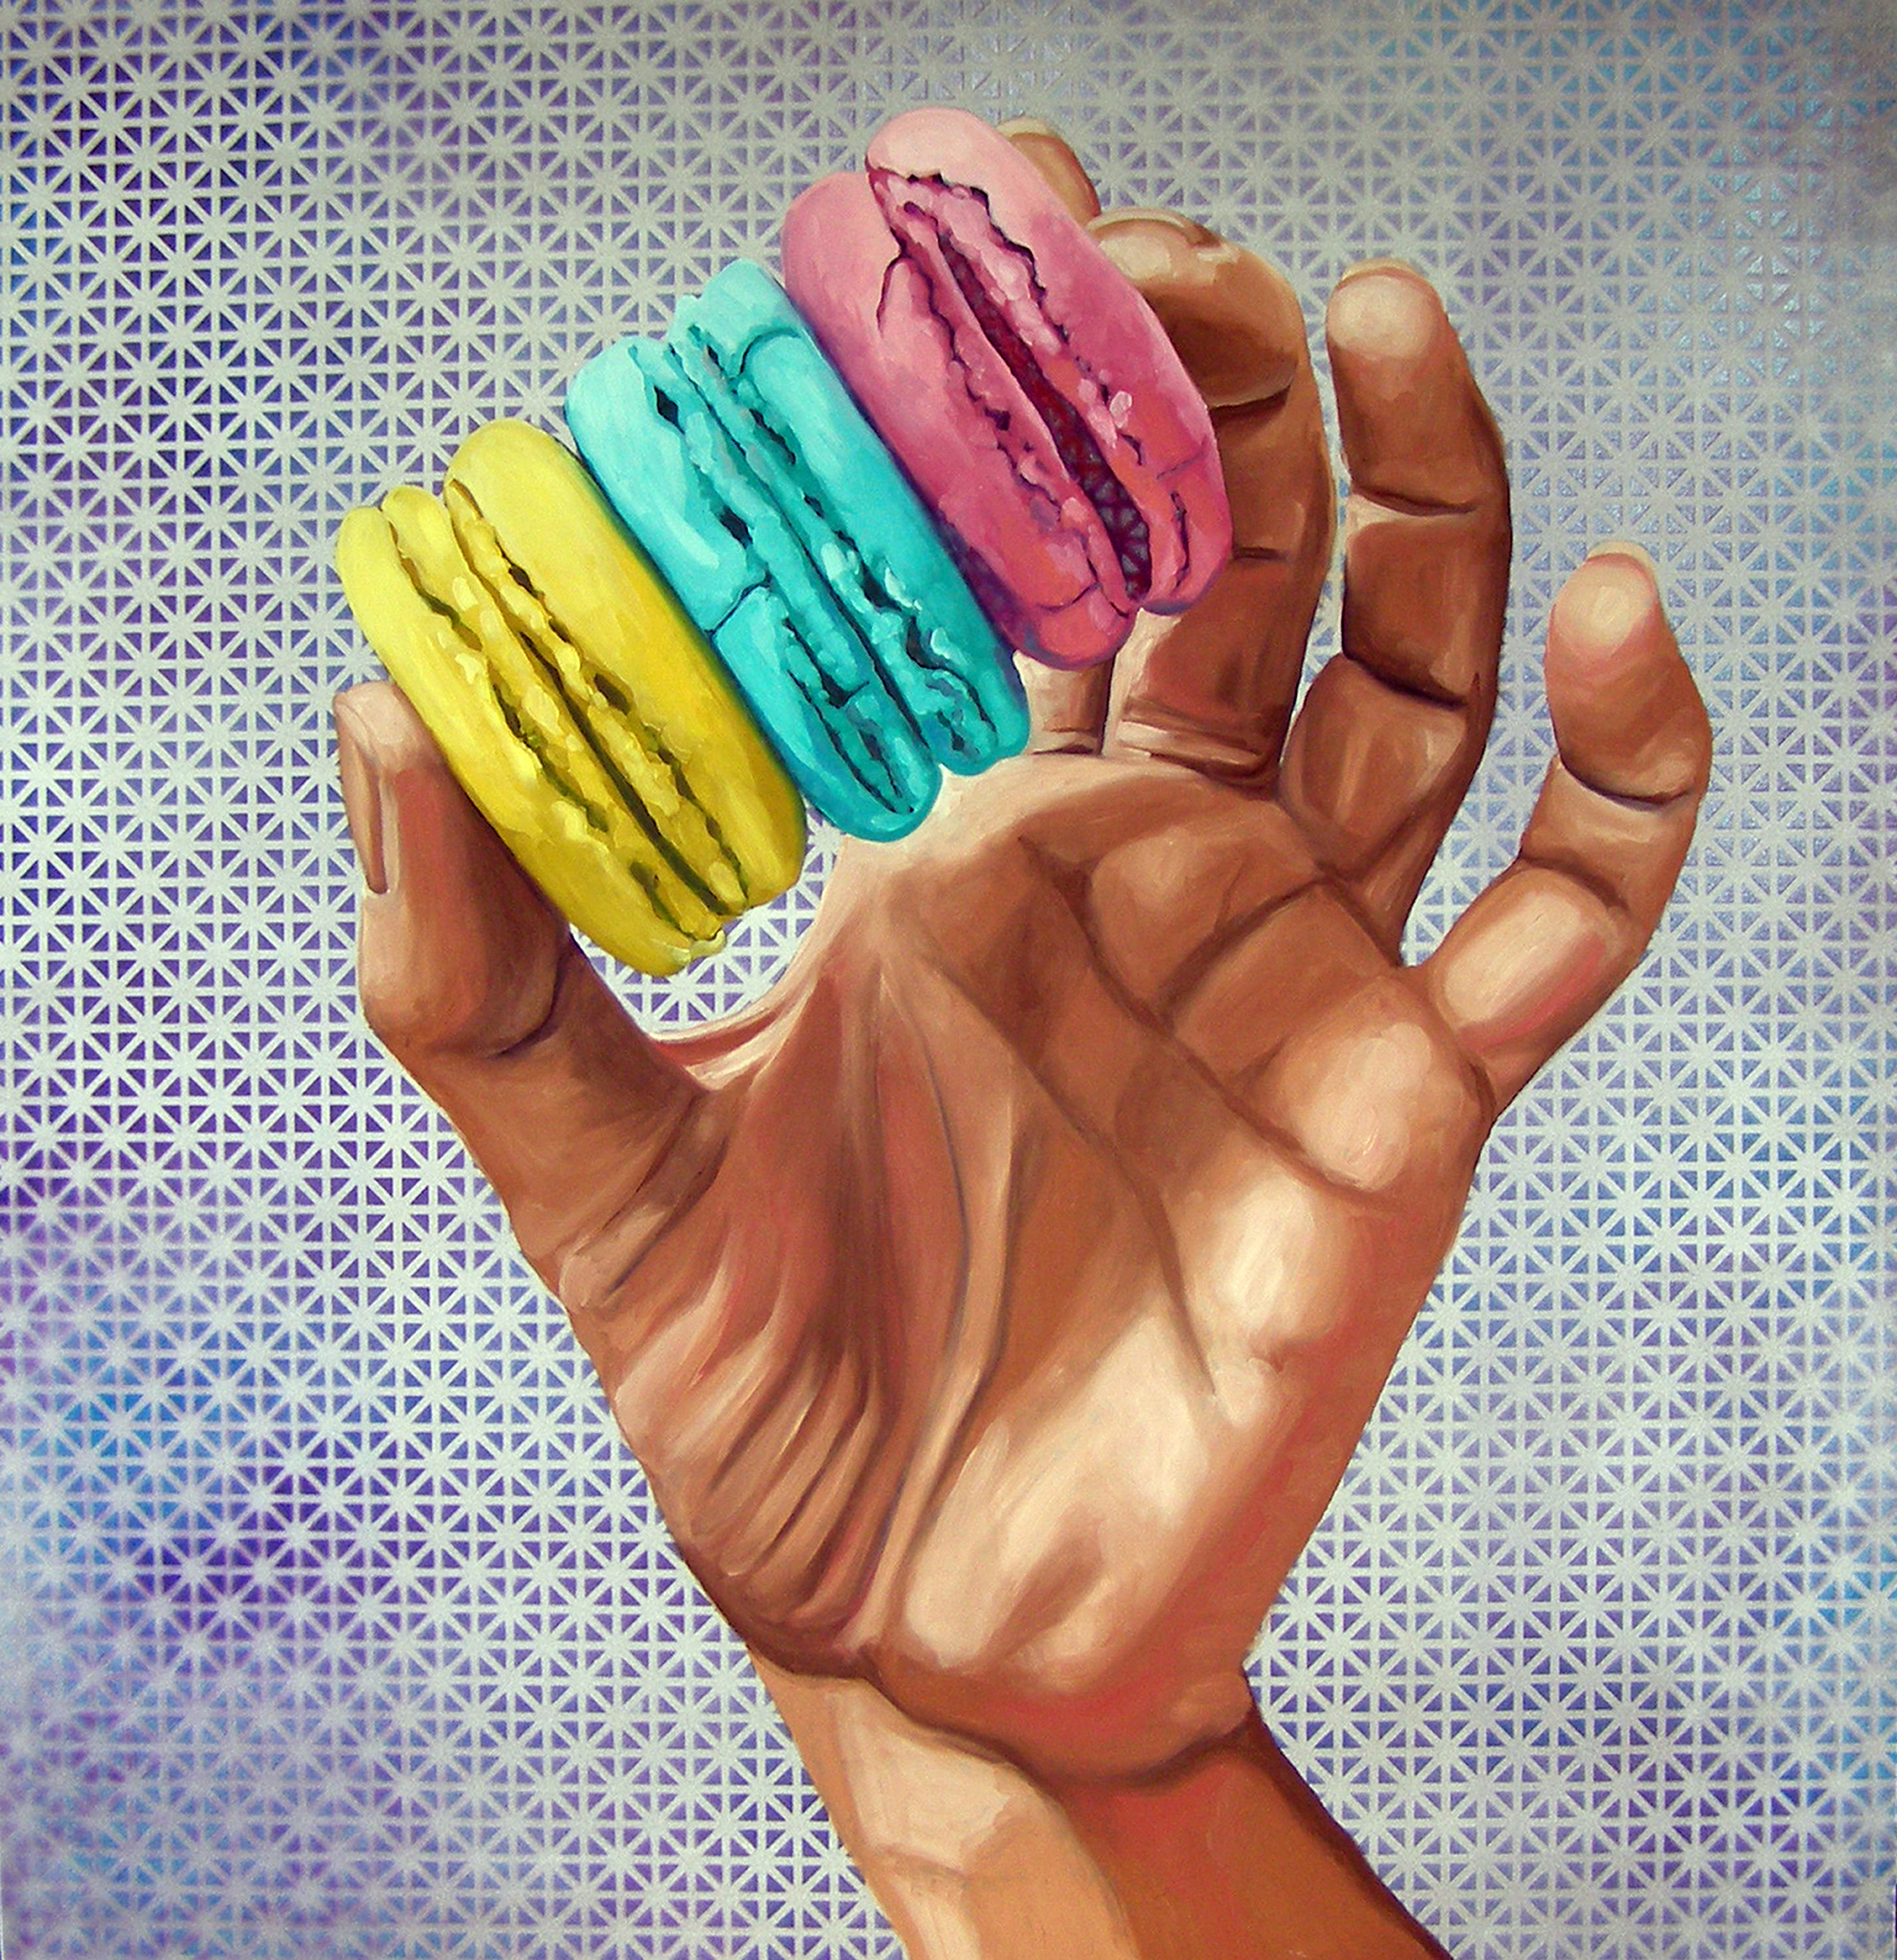 "Main Street Macaron, 31 X 30"", Oil on panel, 2019"